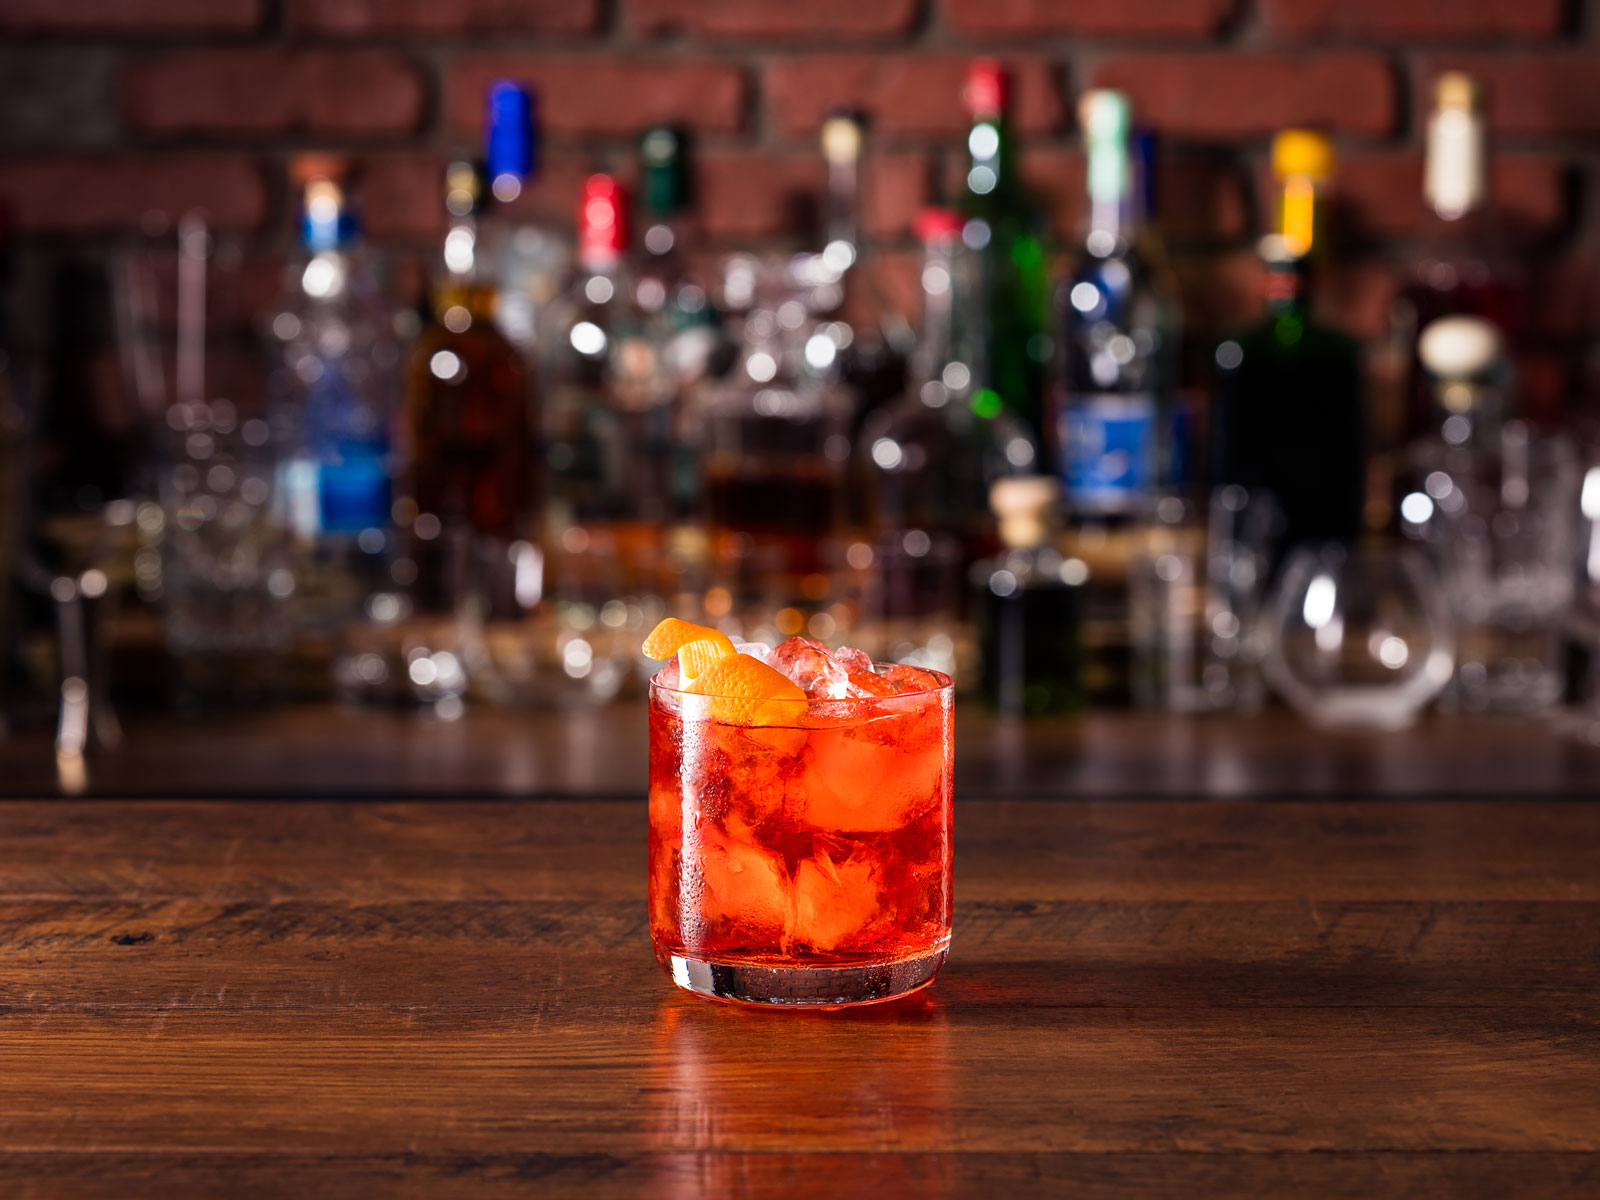 9 Tips for Making the Perfect Negroni, According to a Master Bartender